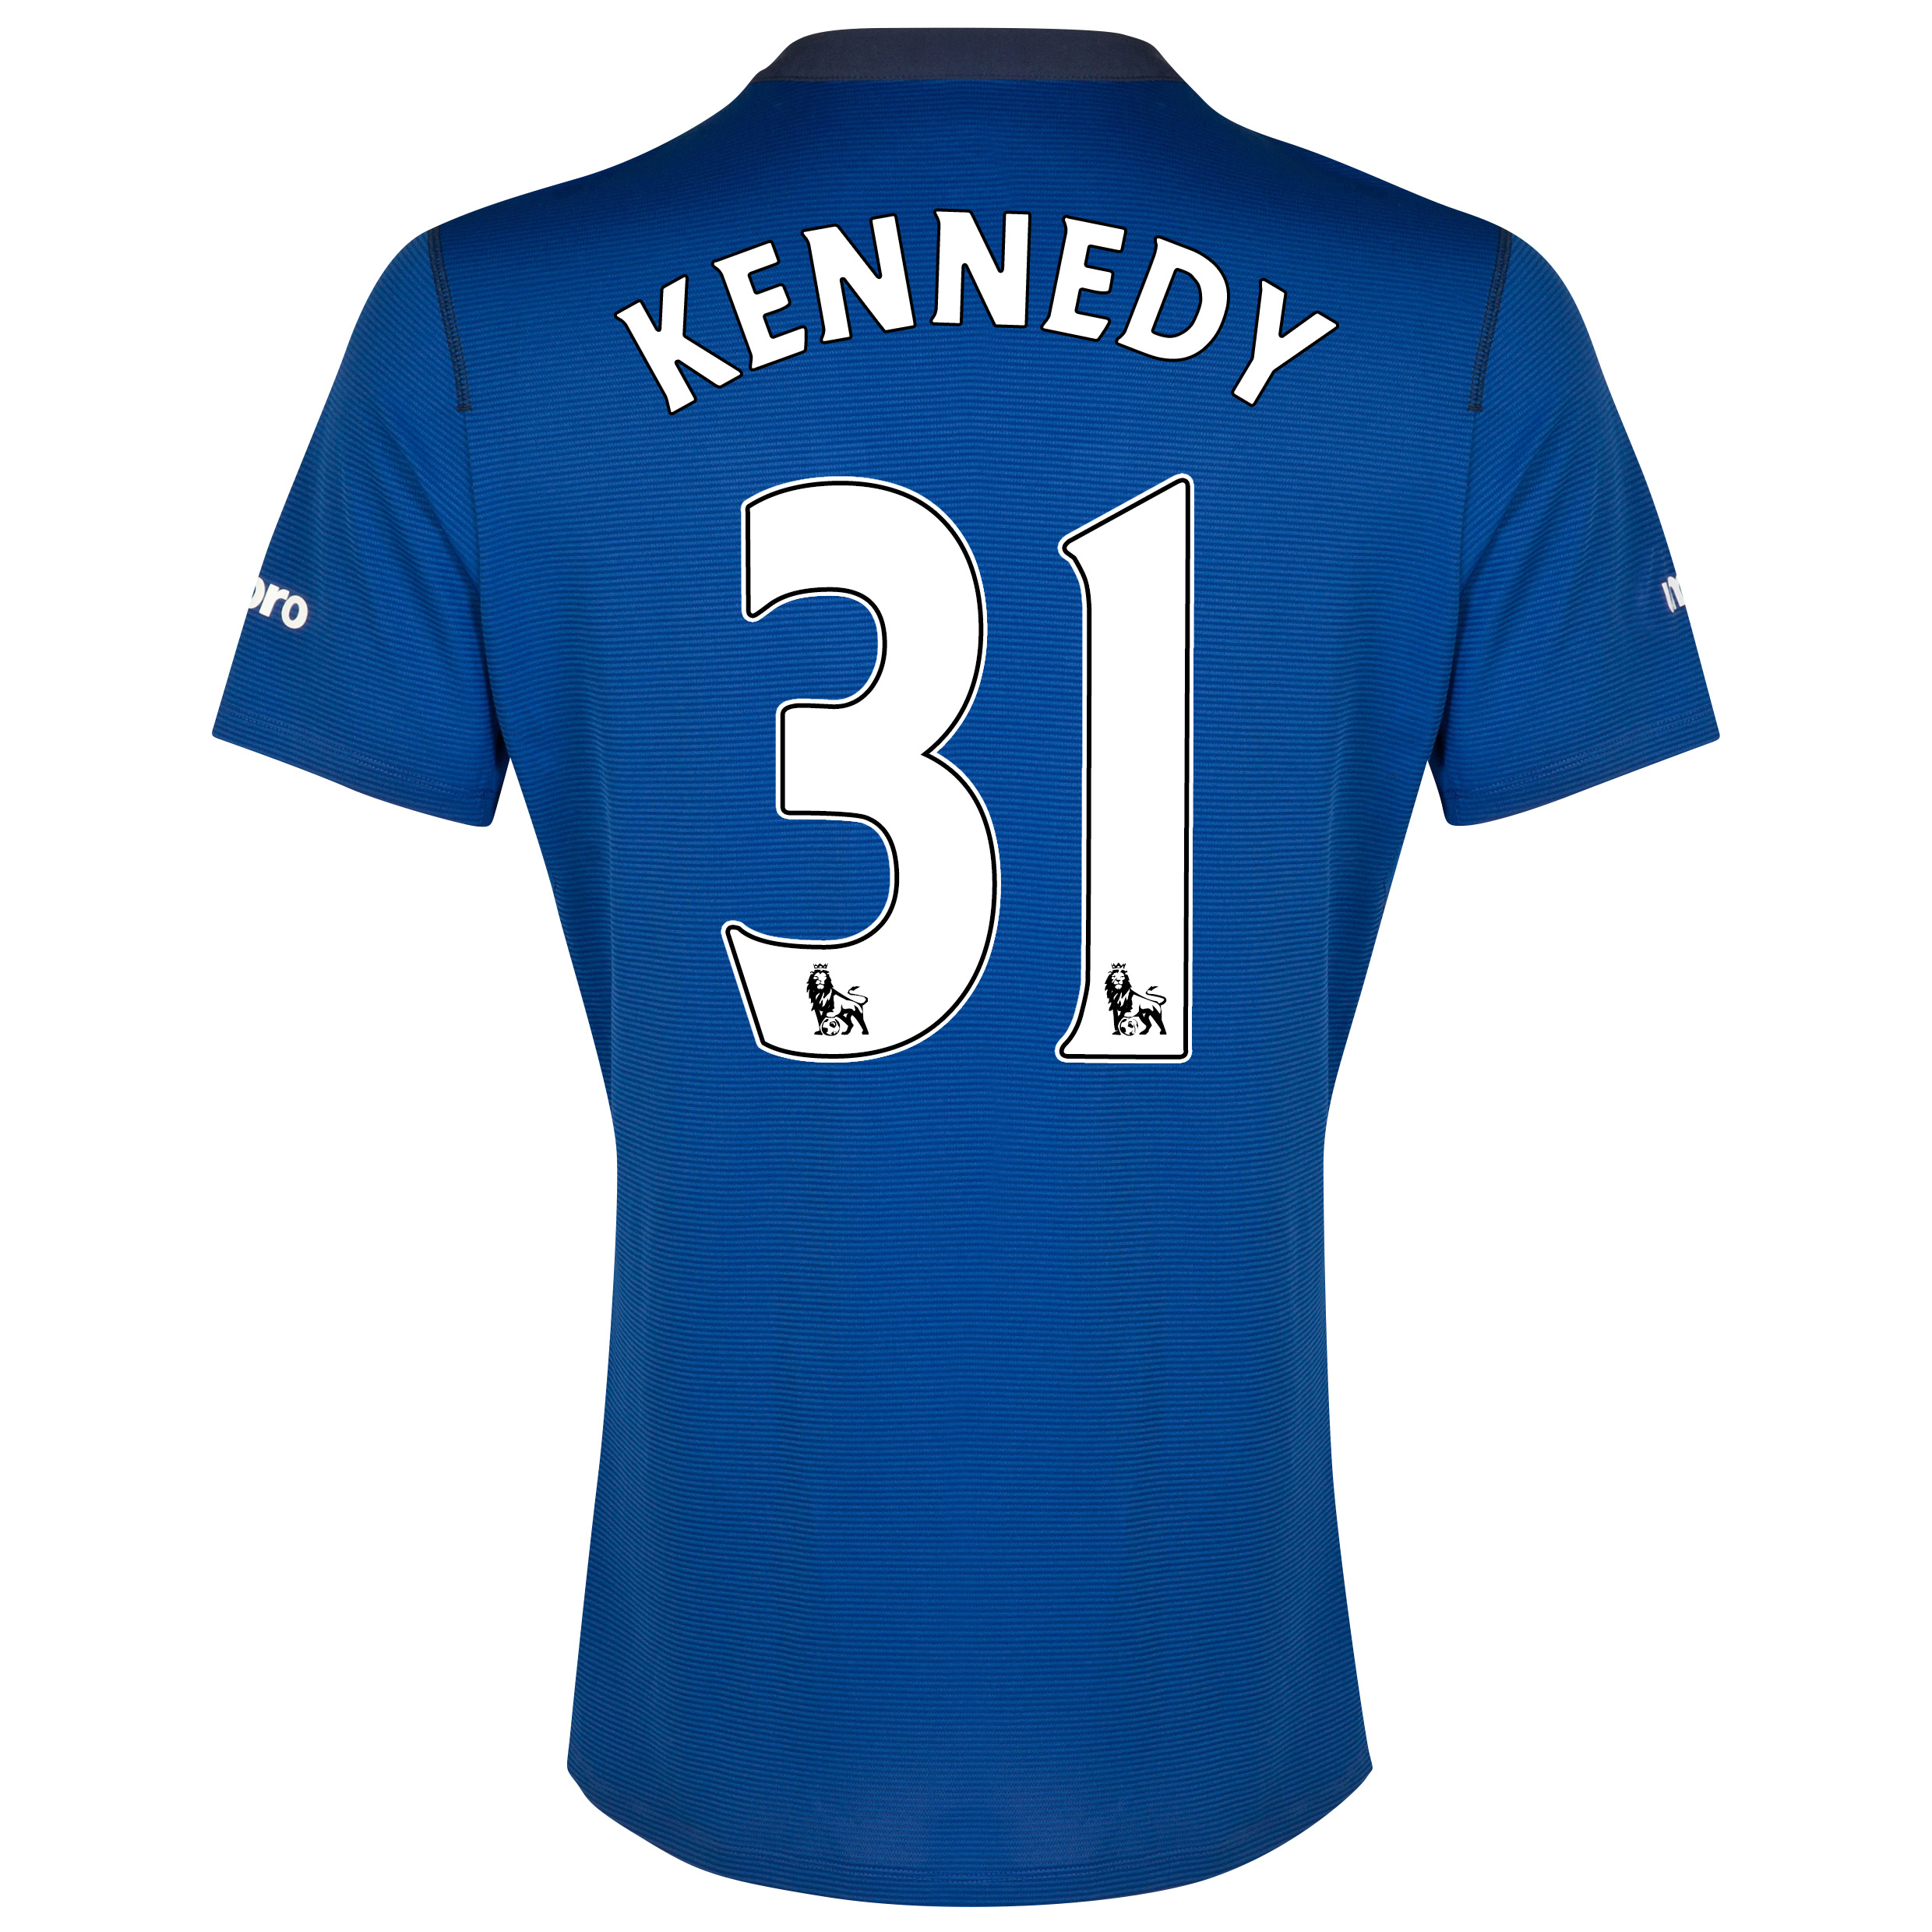 Everton SS Home Shirt 2014/15 with Kennedy 31 printing